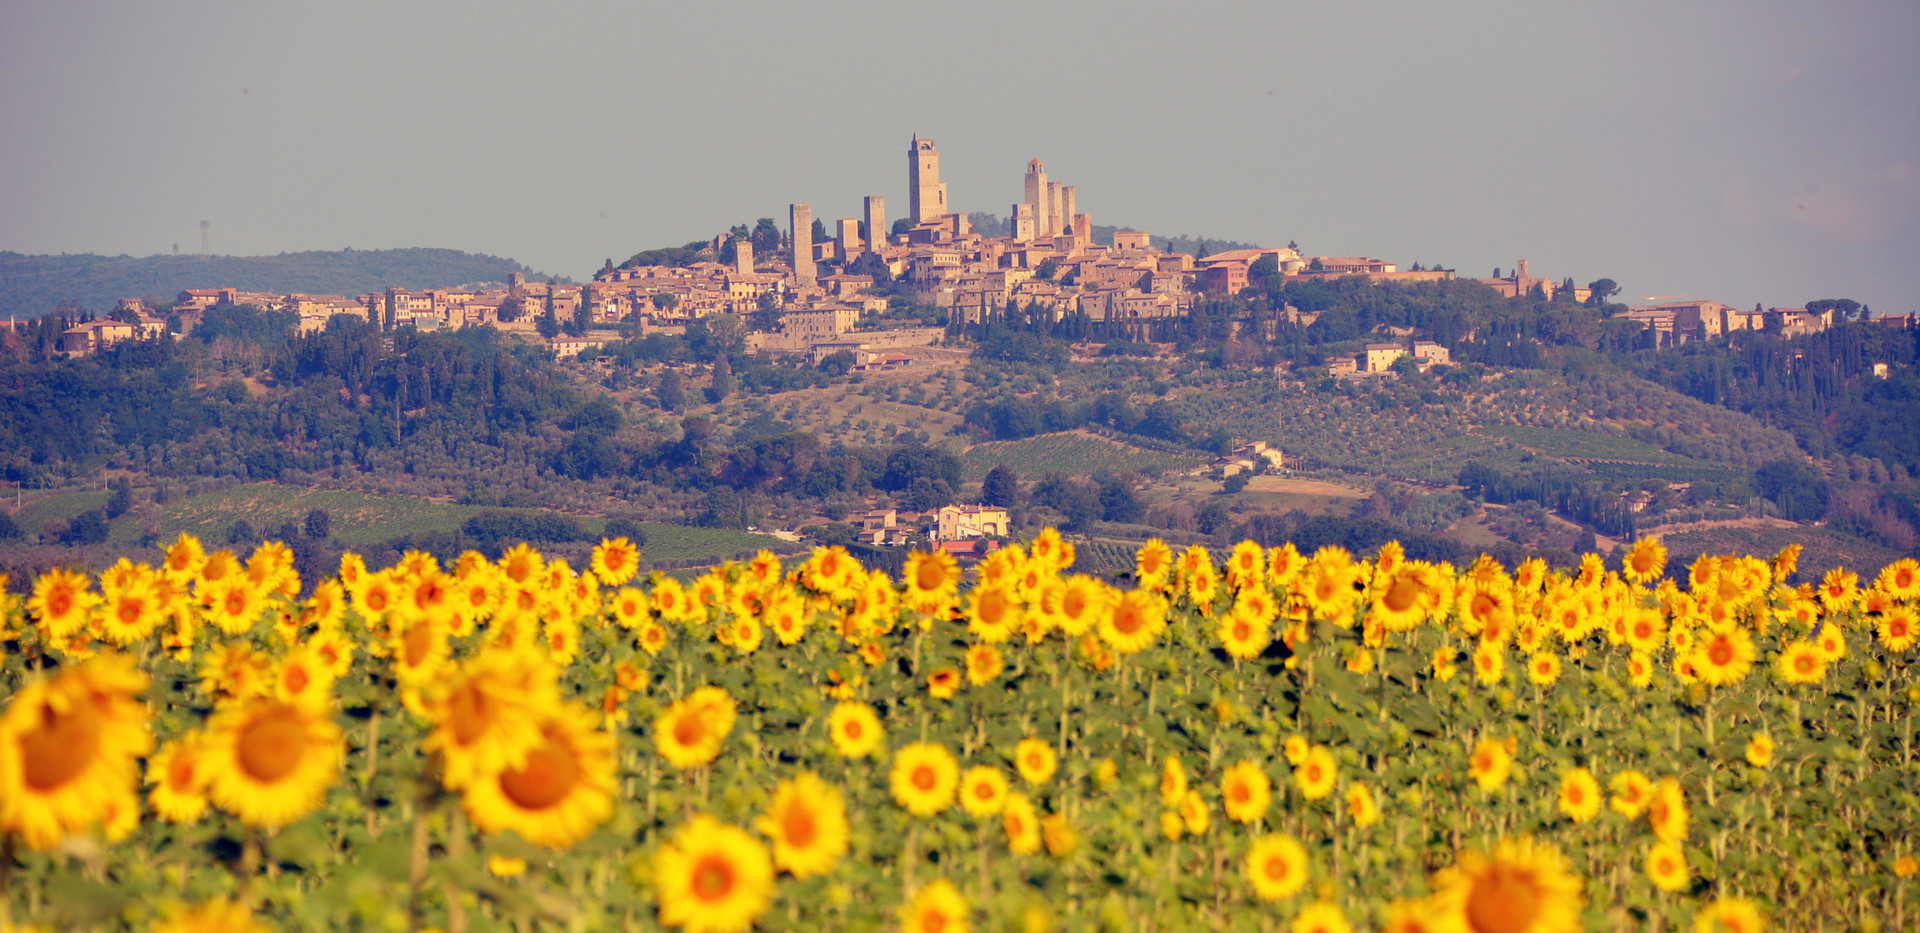 Our first winery in tasting in San Gimignano